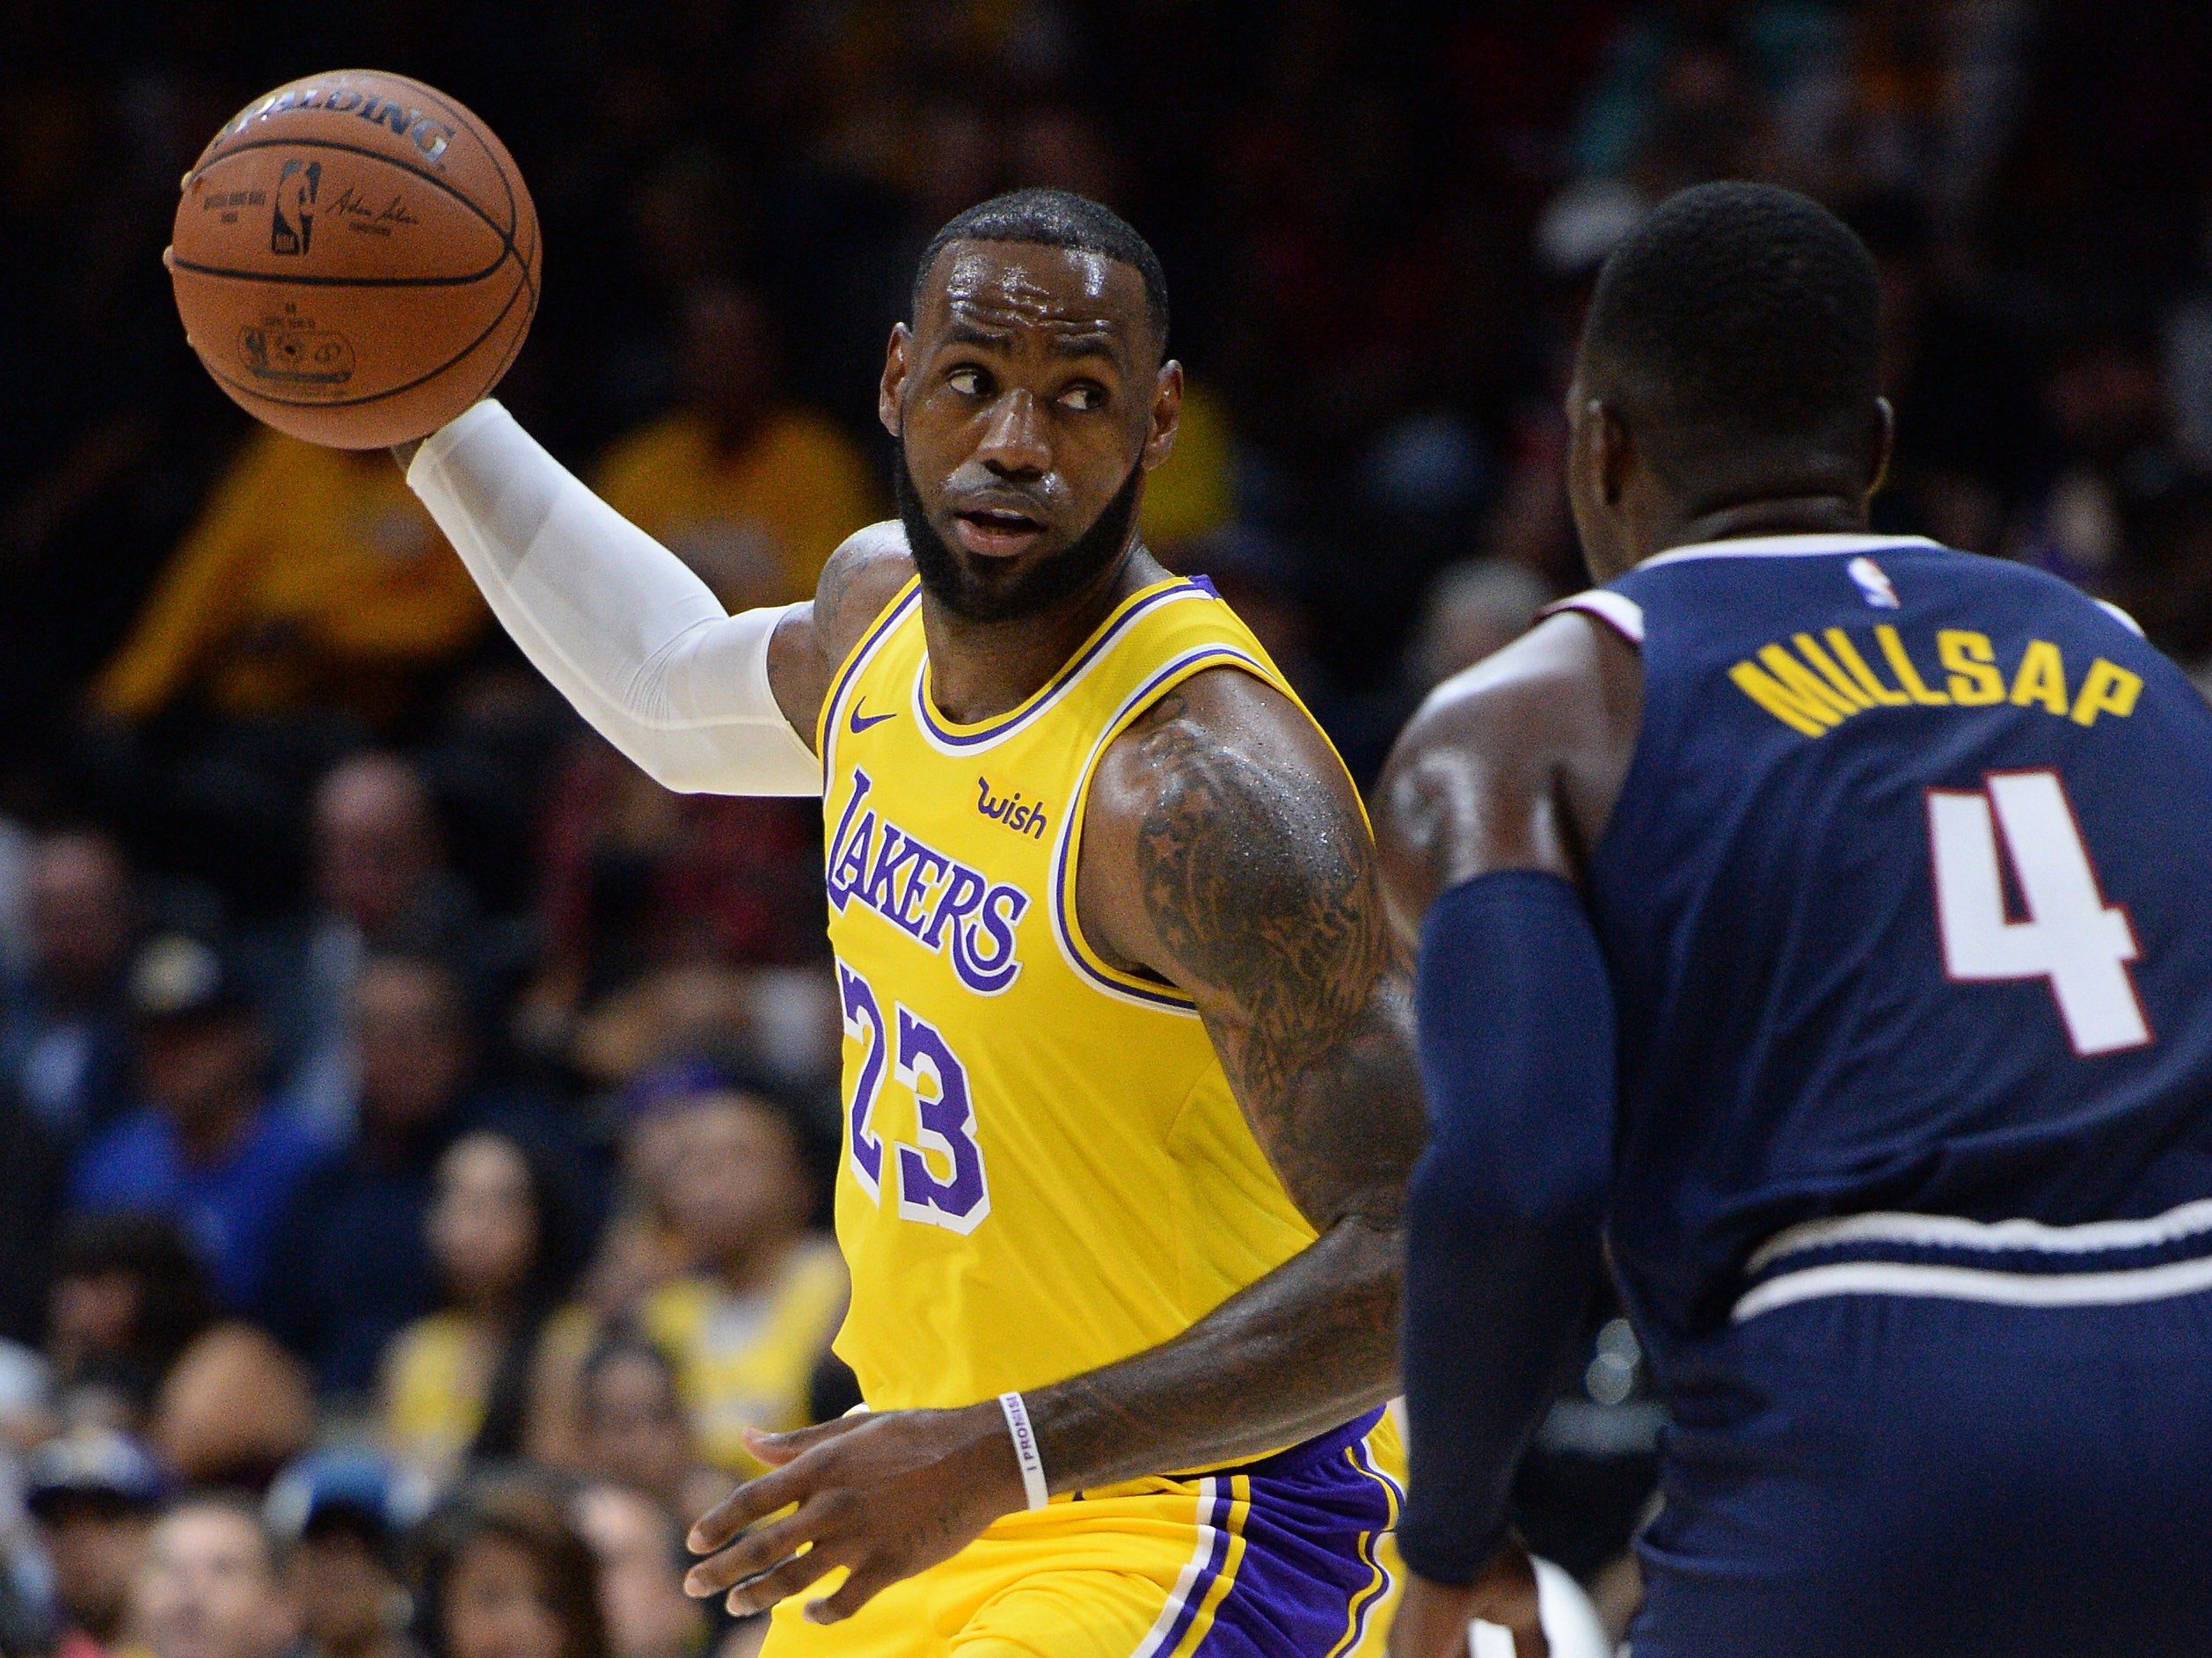 LeBron James will make Lakers' debut at Staples Center on Tuesday